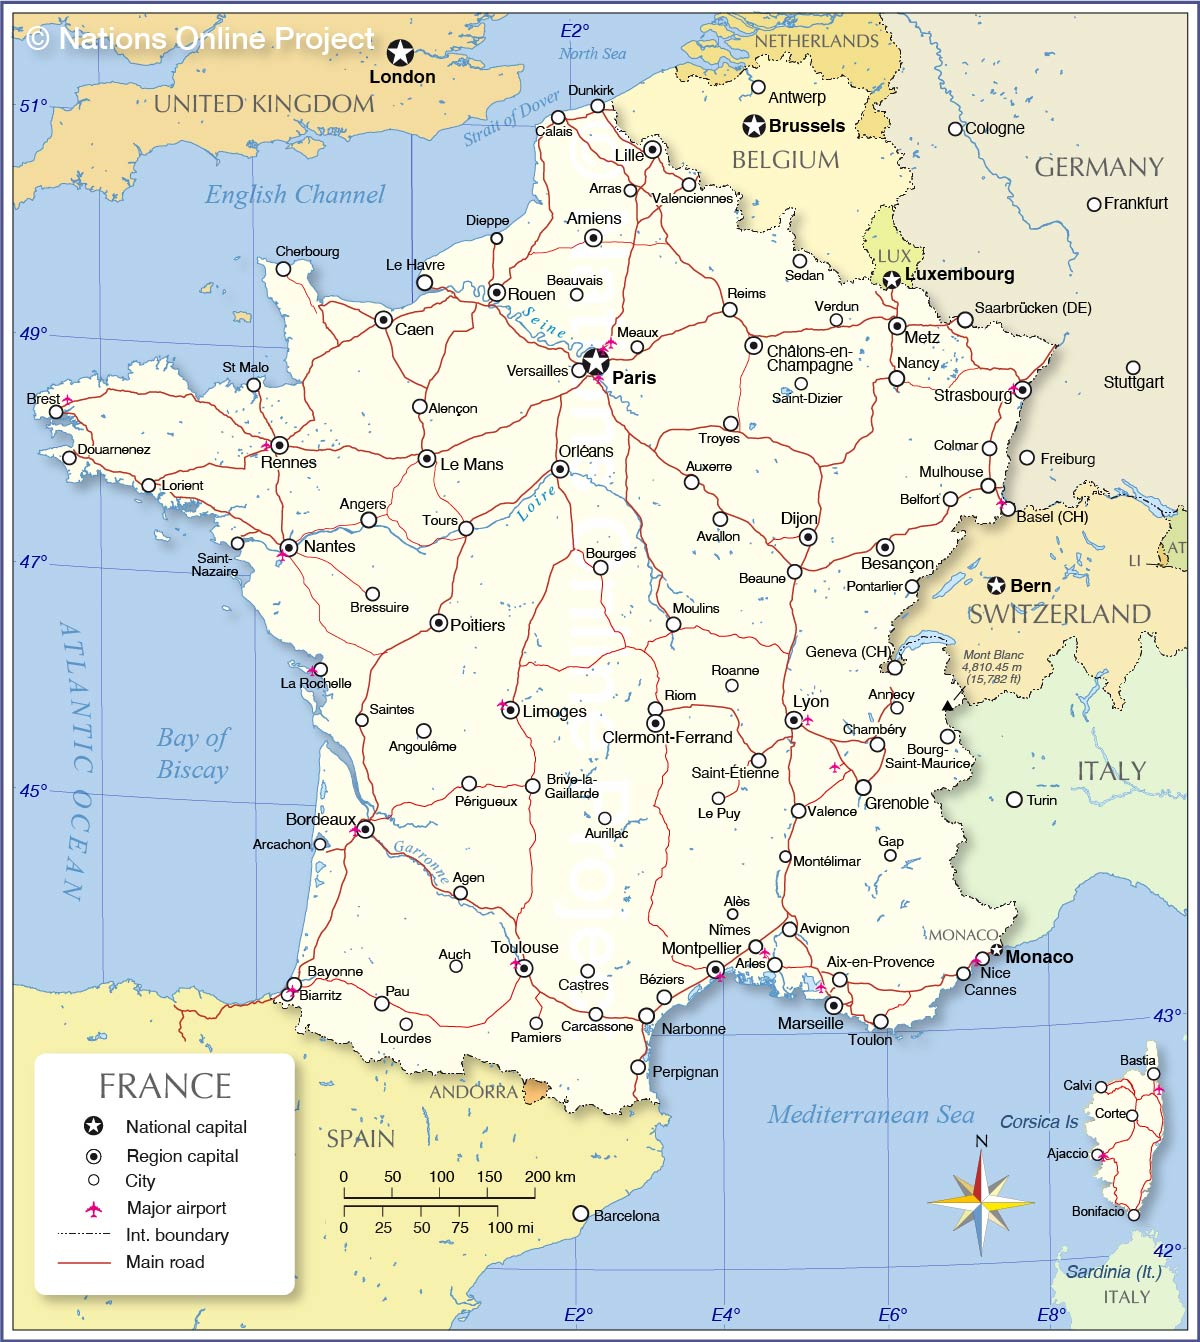 Outline Political Map Of France.Political Map Of France Nations Online Project